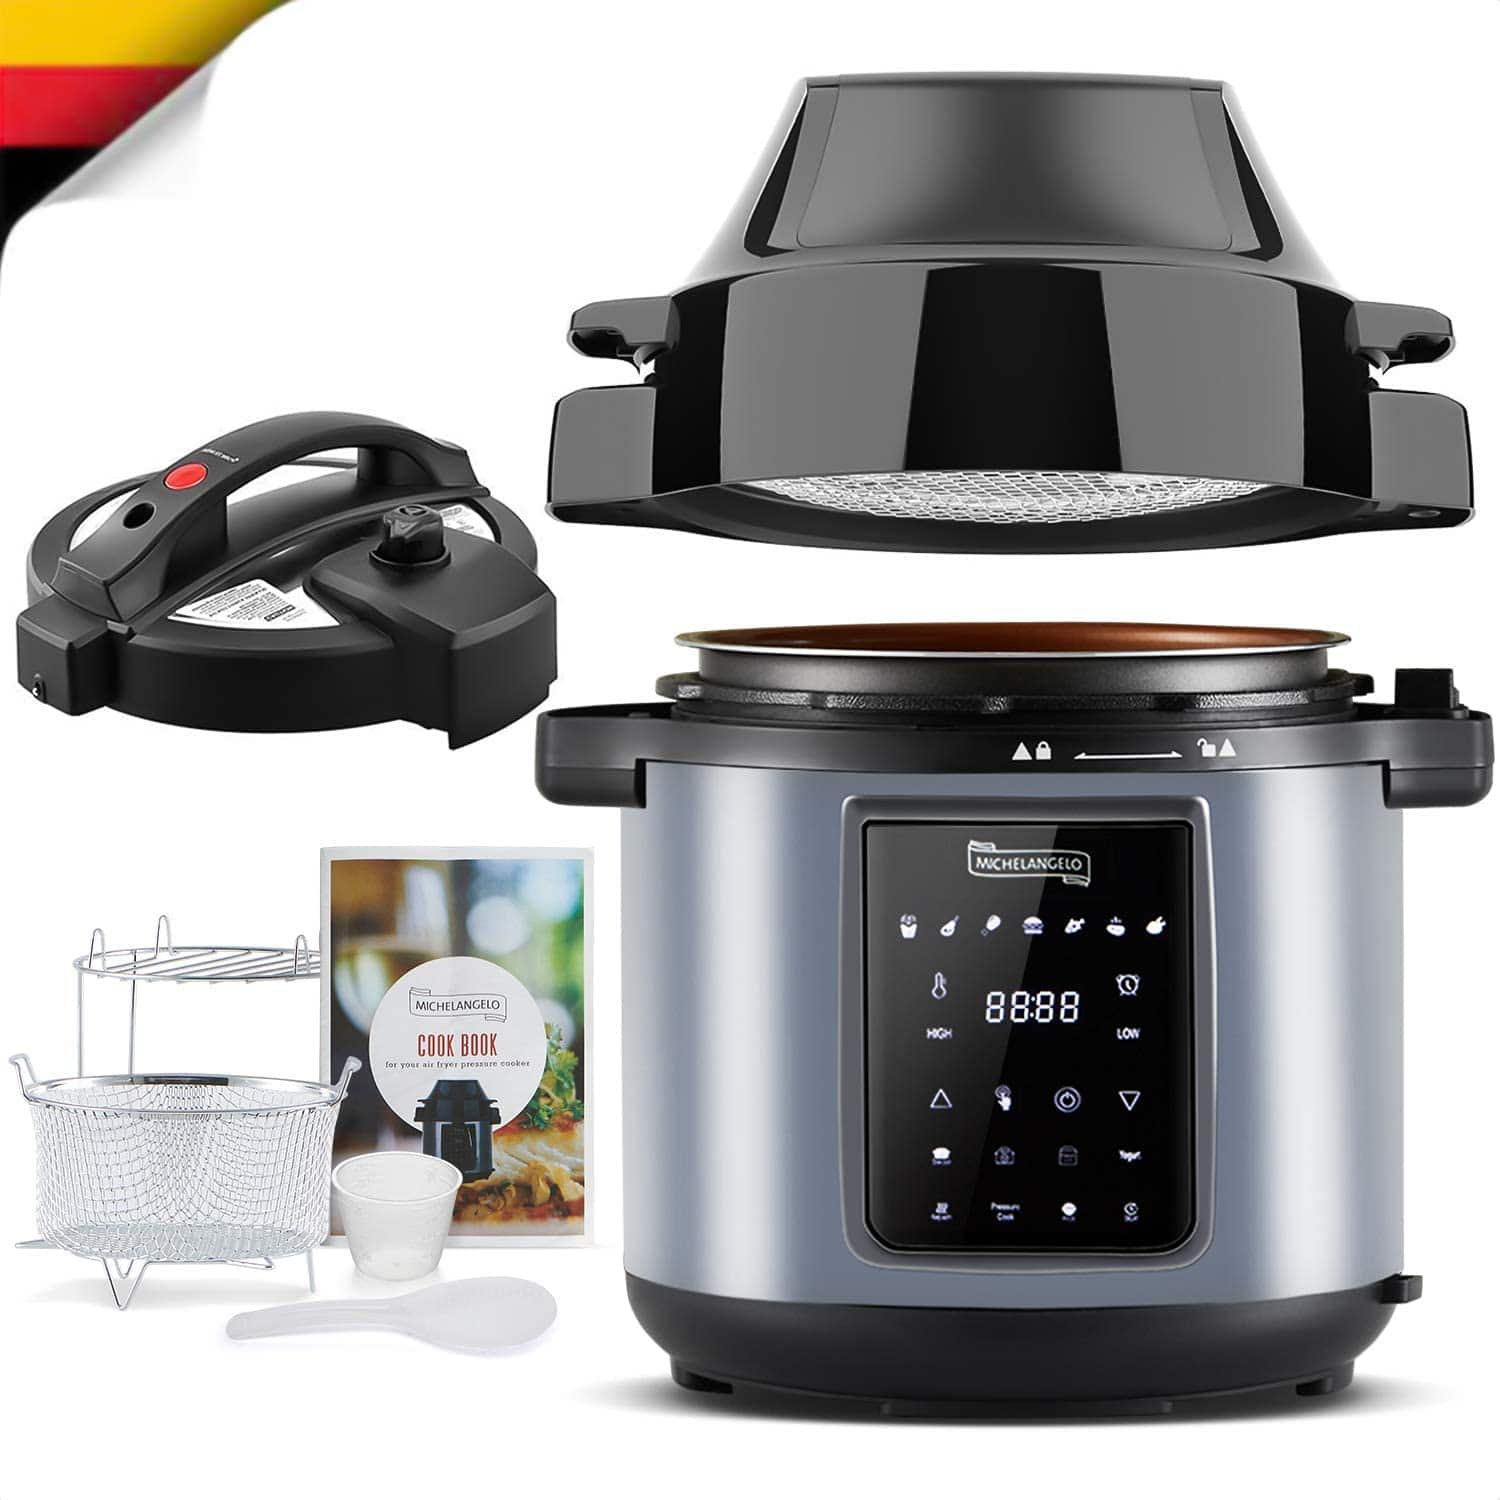 MICHELANGELO 6 QT Pressure Cooker Air Fryer Combo, All-in-1 Pressure Cooker with Air Fryer - Two Lids for Pressure Cooker,Large Pressure Fryer,Air Fryer, Rice,Slow Cooke $84.99